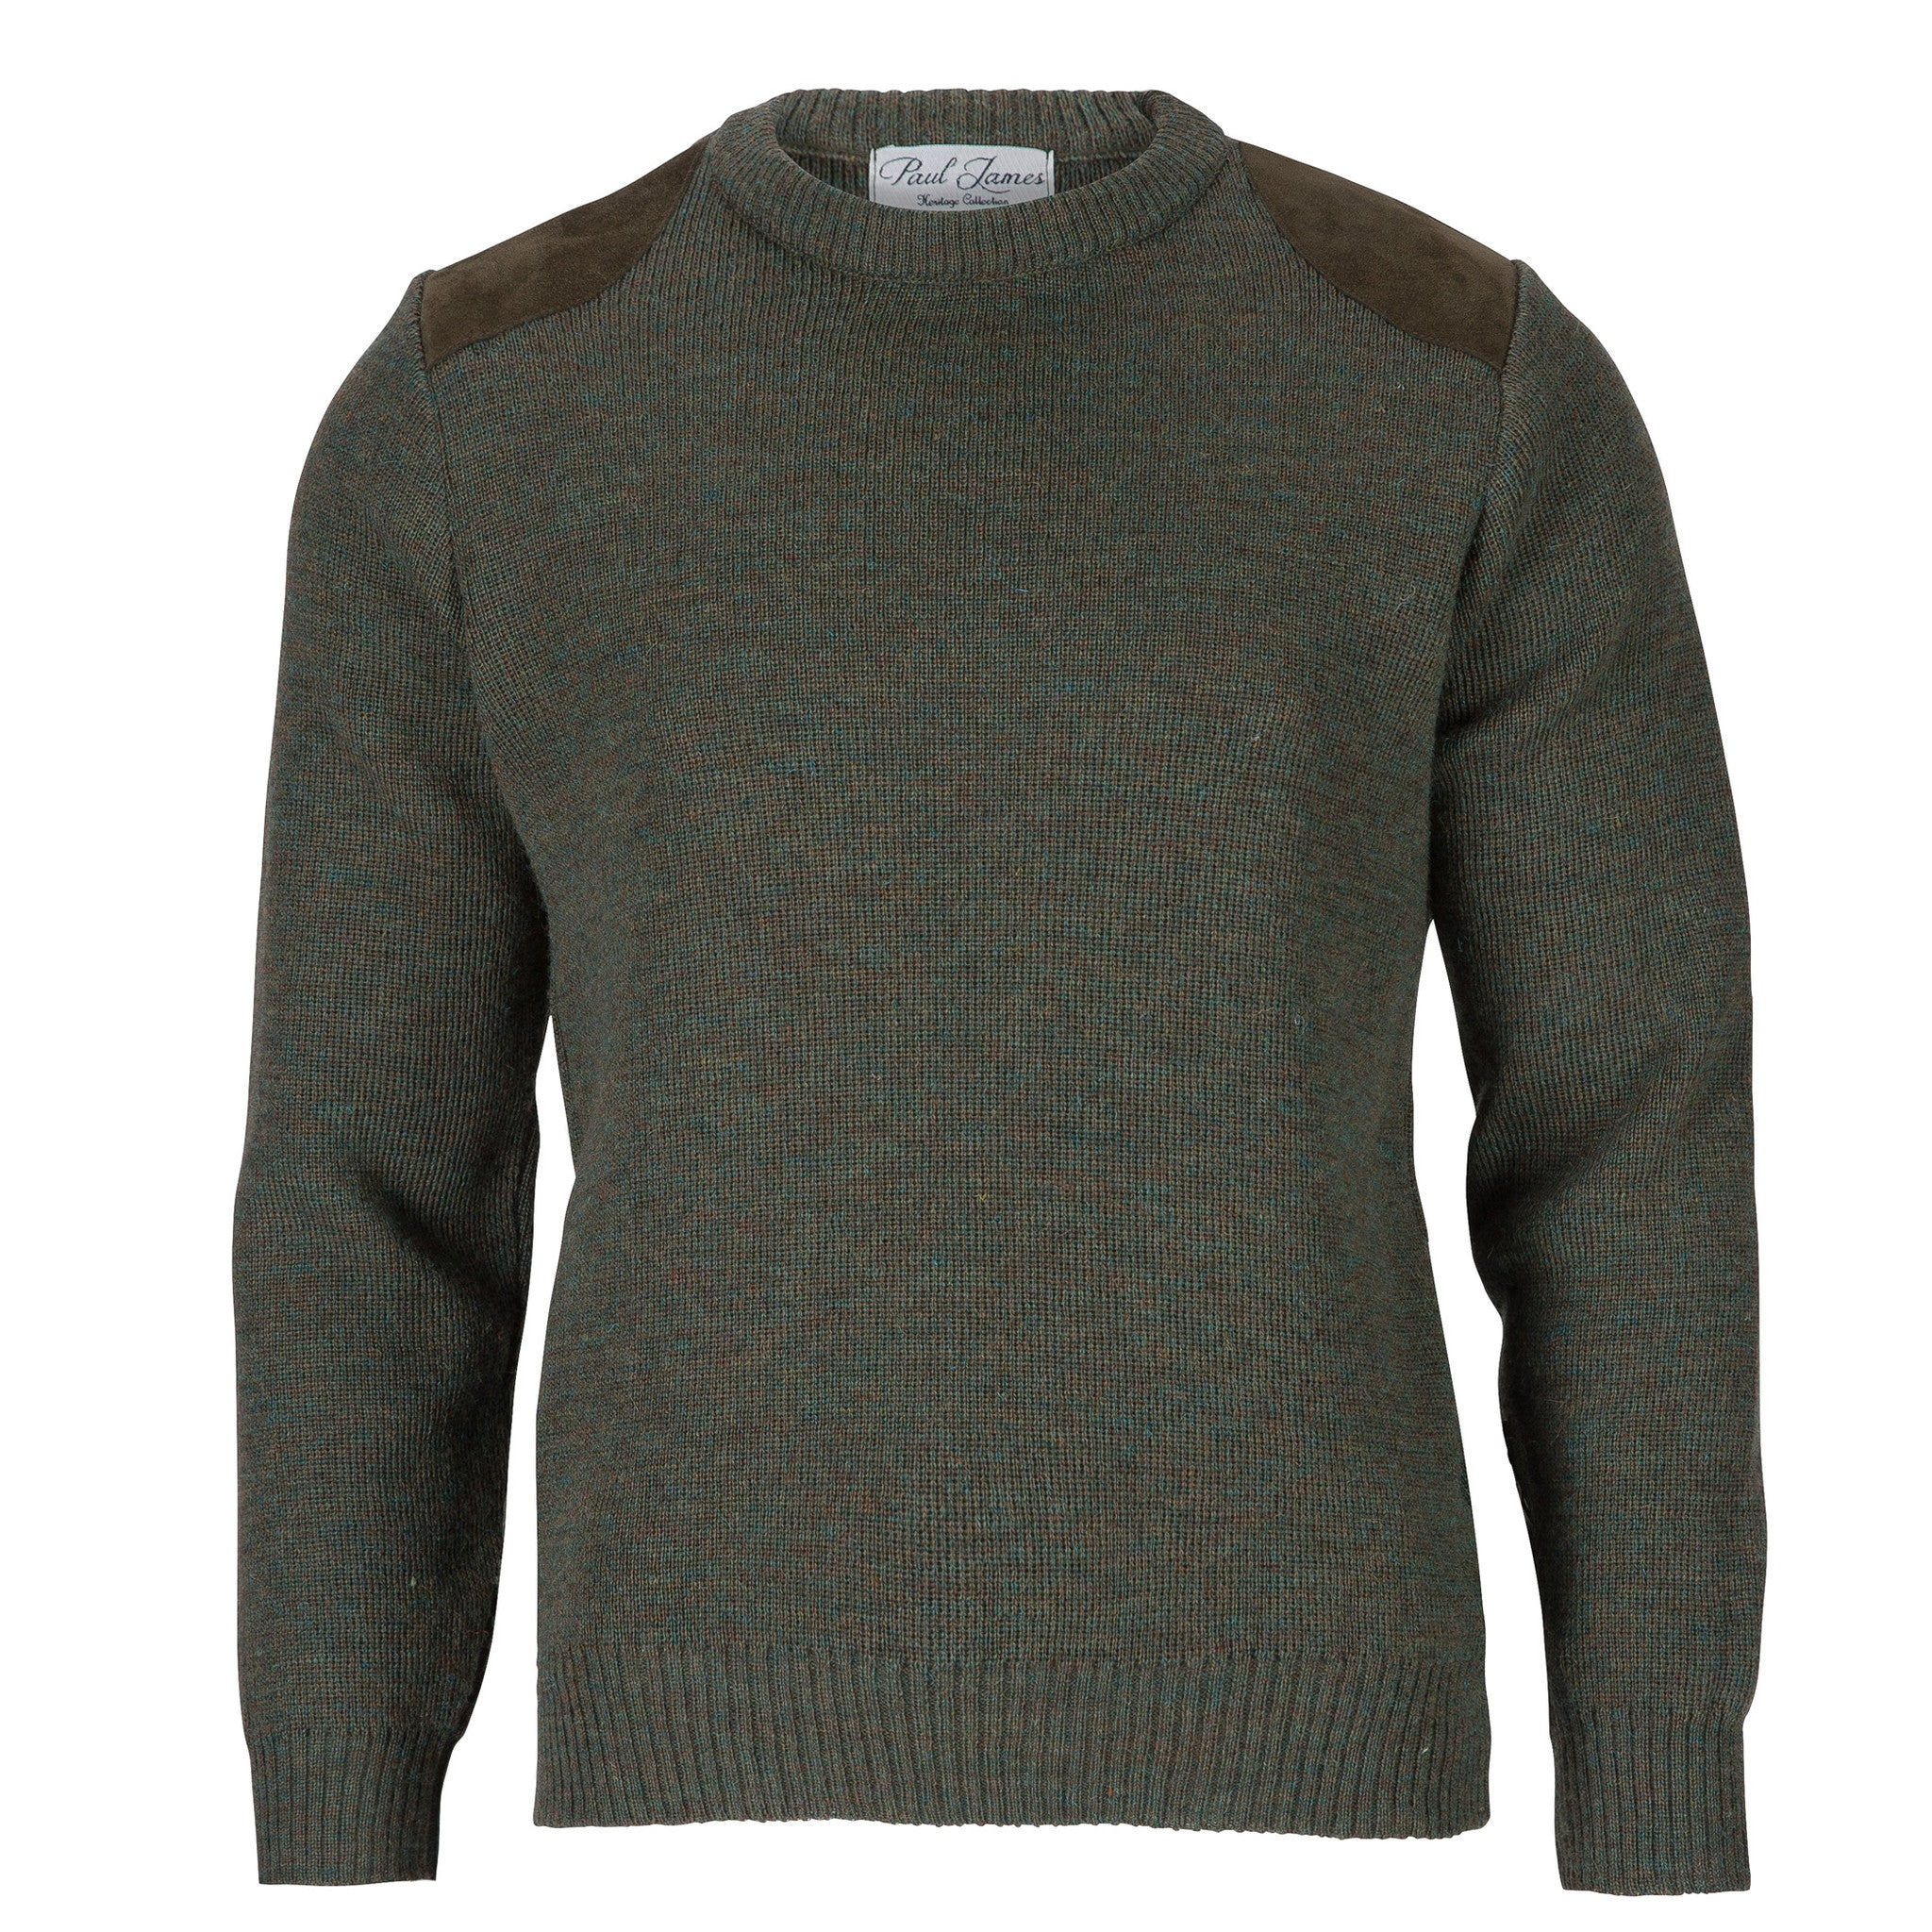 Shooter Edition I - Fine Knit Jumper - Pure British Wool - Derby Tweed